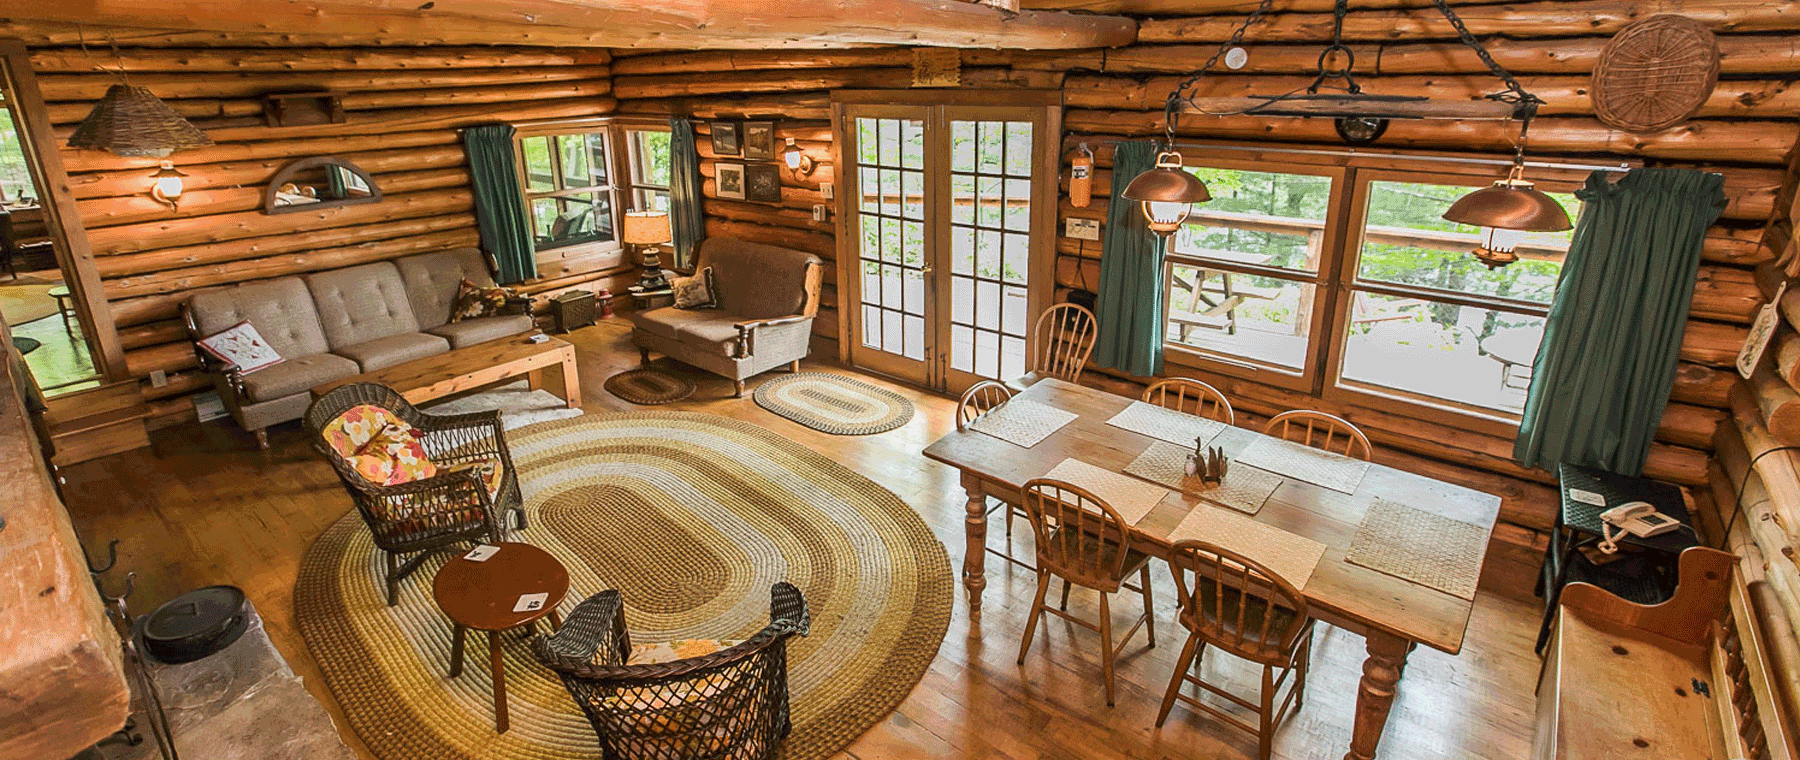 Cottage of the Week: $740K for a log cabin on Opinicon Lake